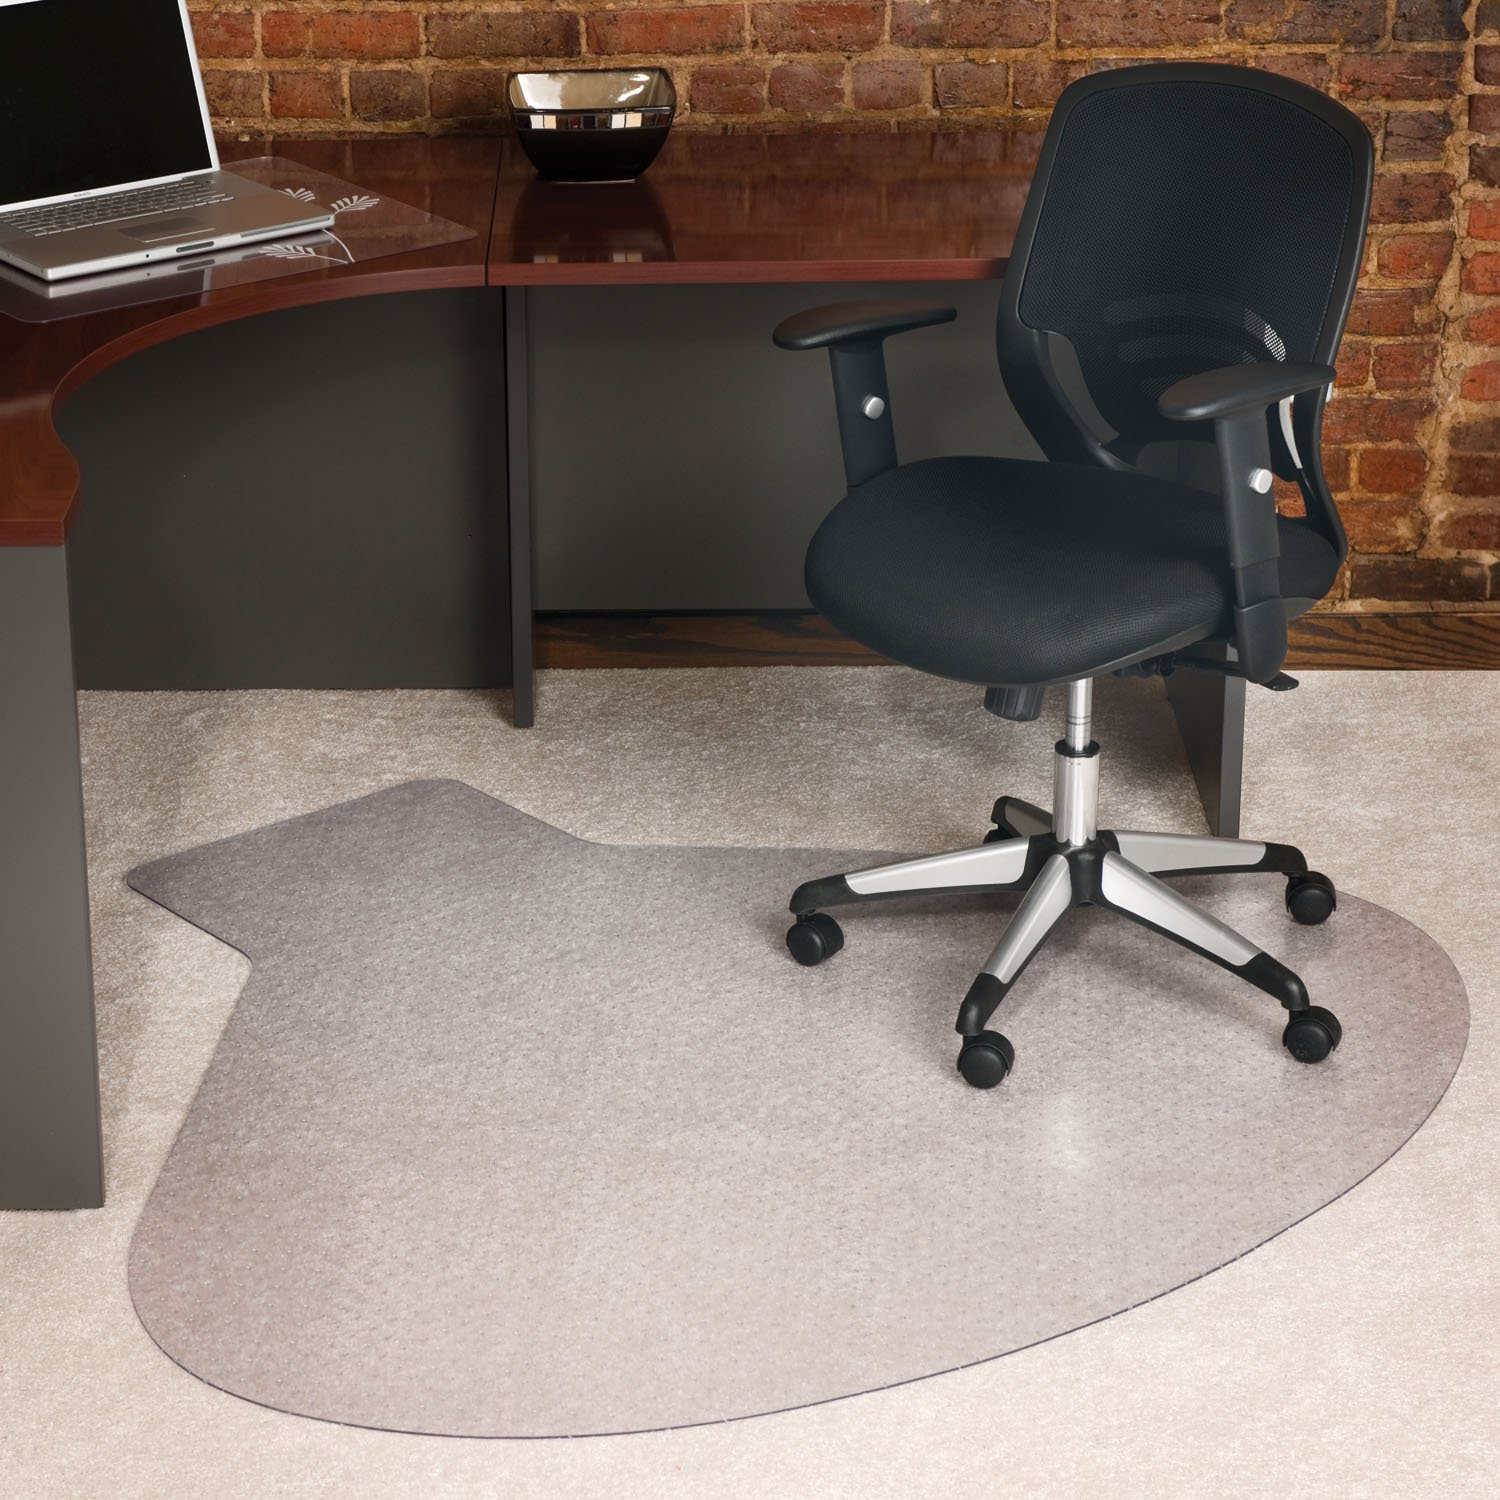 mats after web vitrazza never floor before glass by mat office dent chair